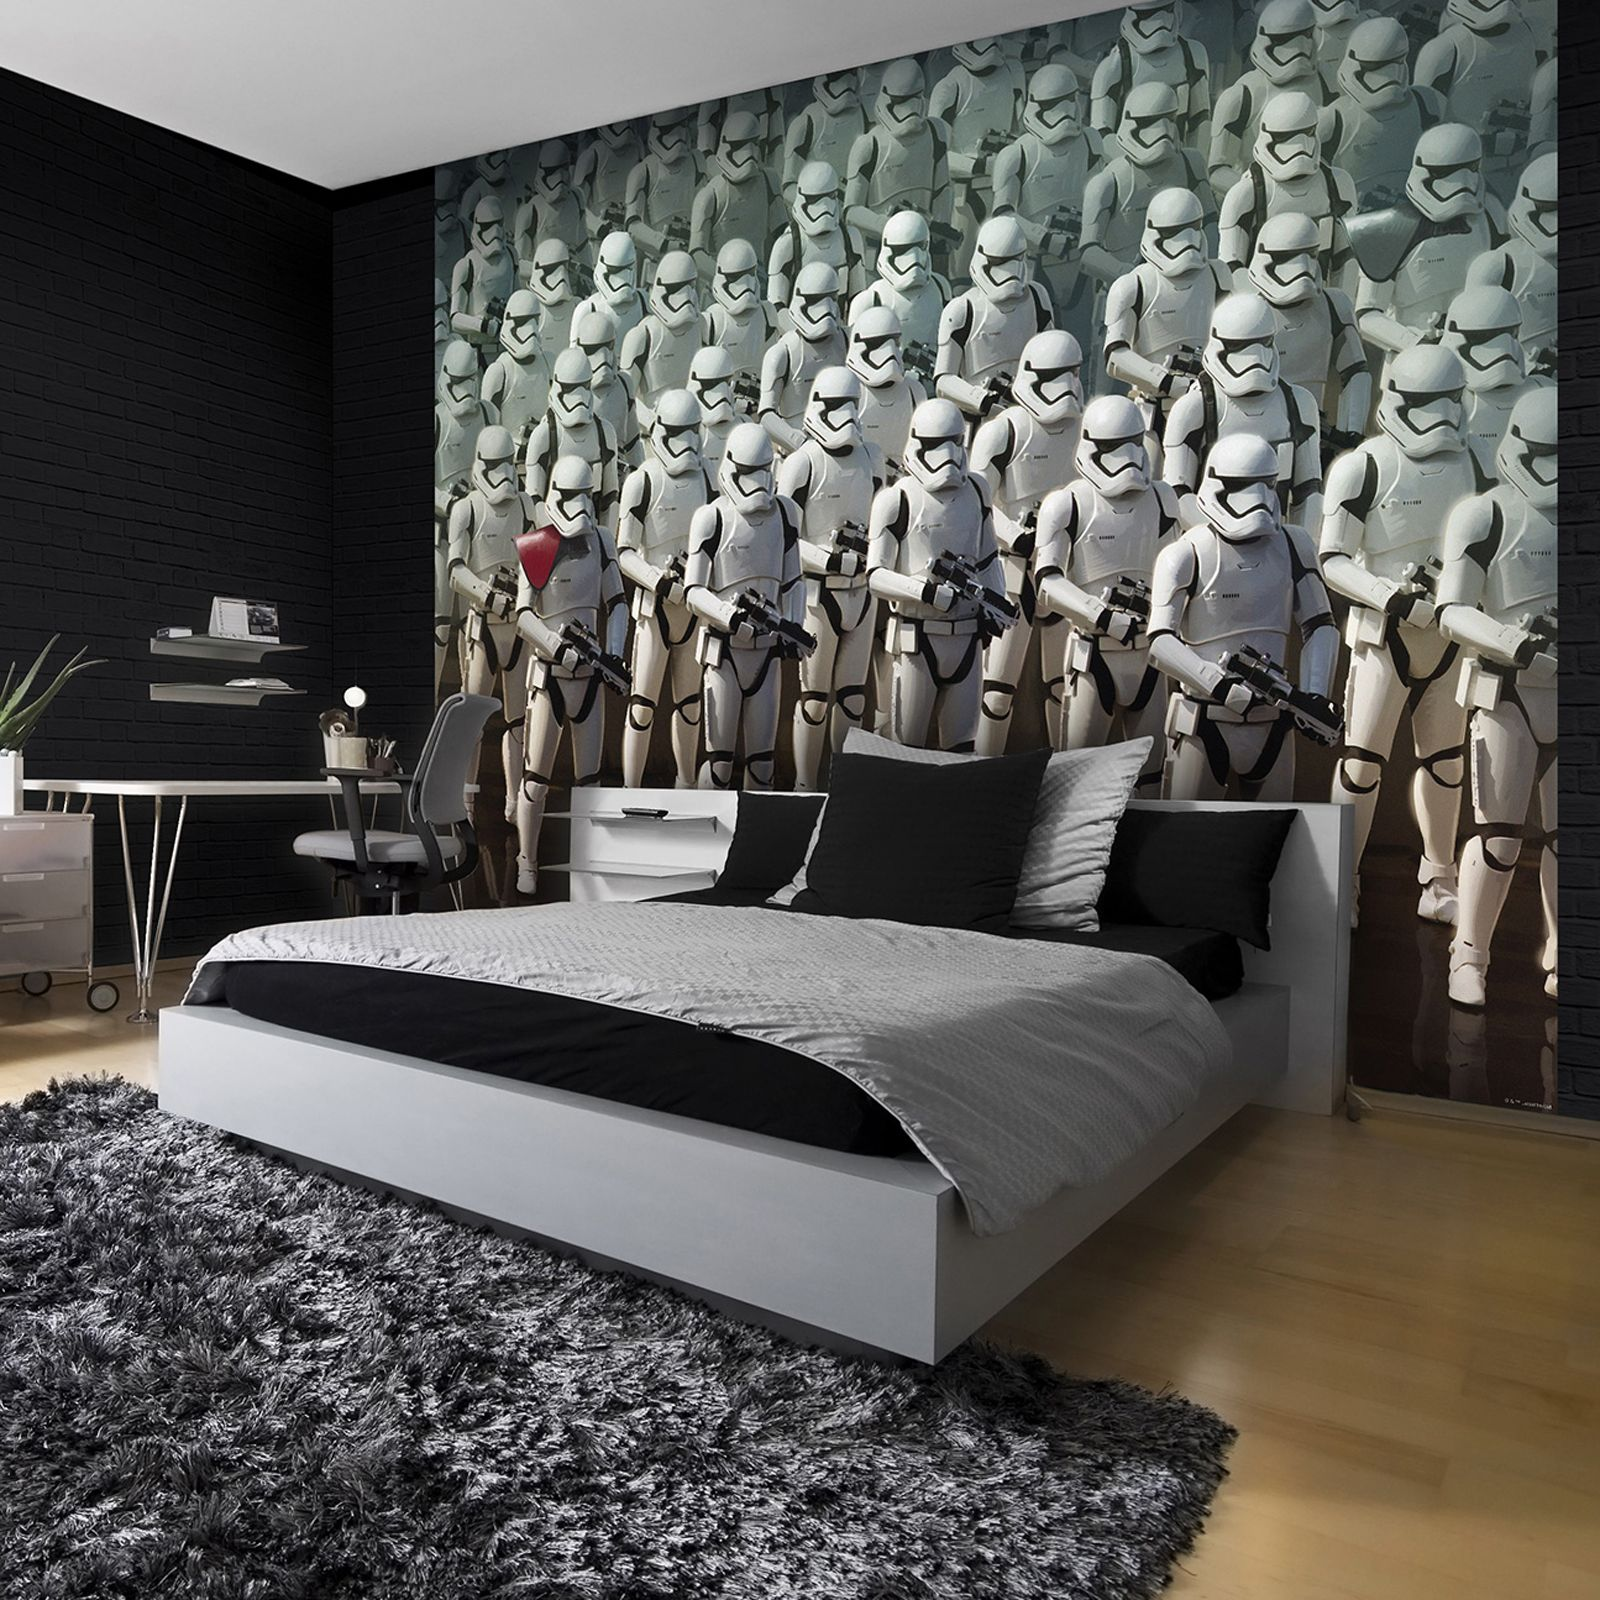 Star wars wallpaper wall mural 254 x 184cm force awakens for Army wallpaper mural